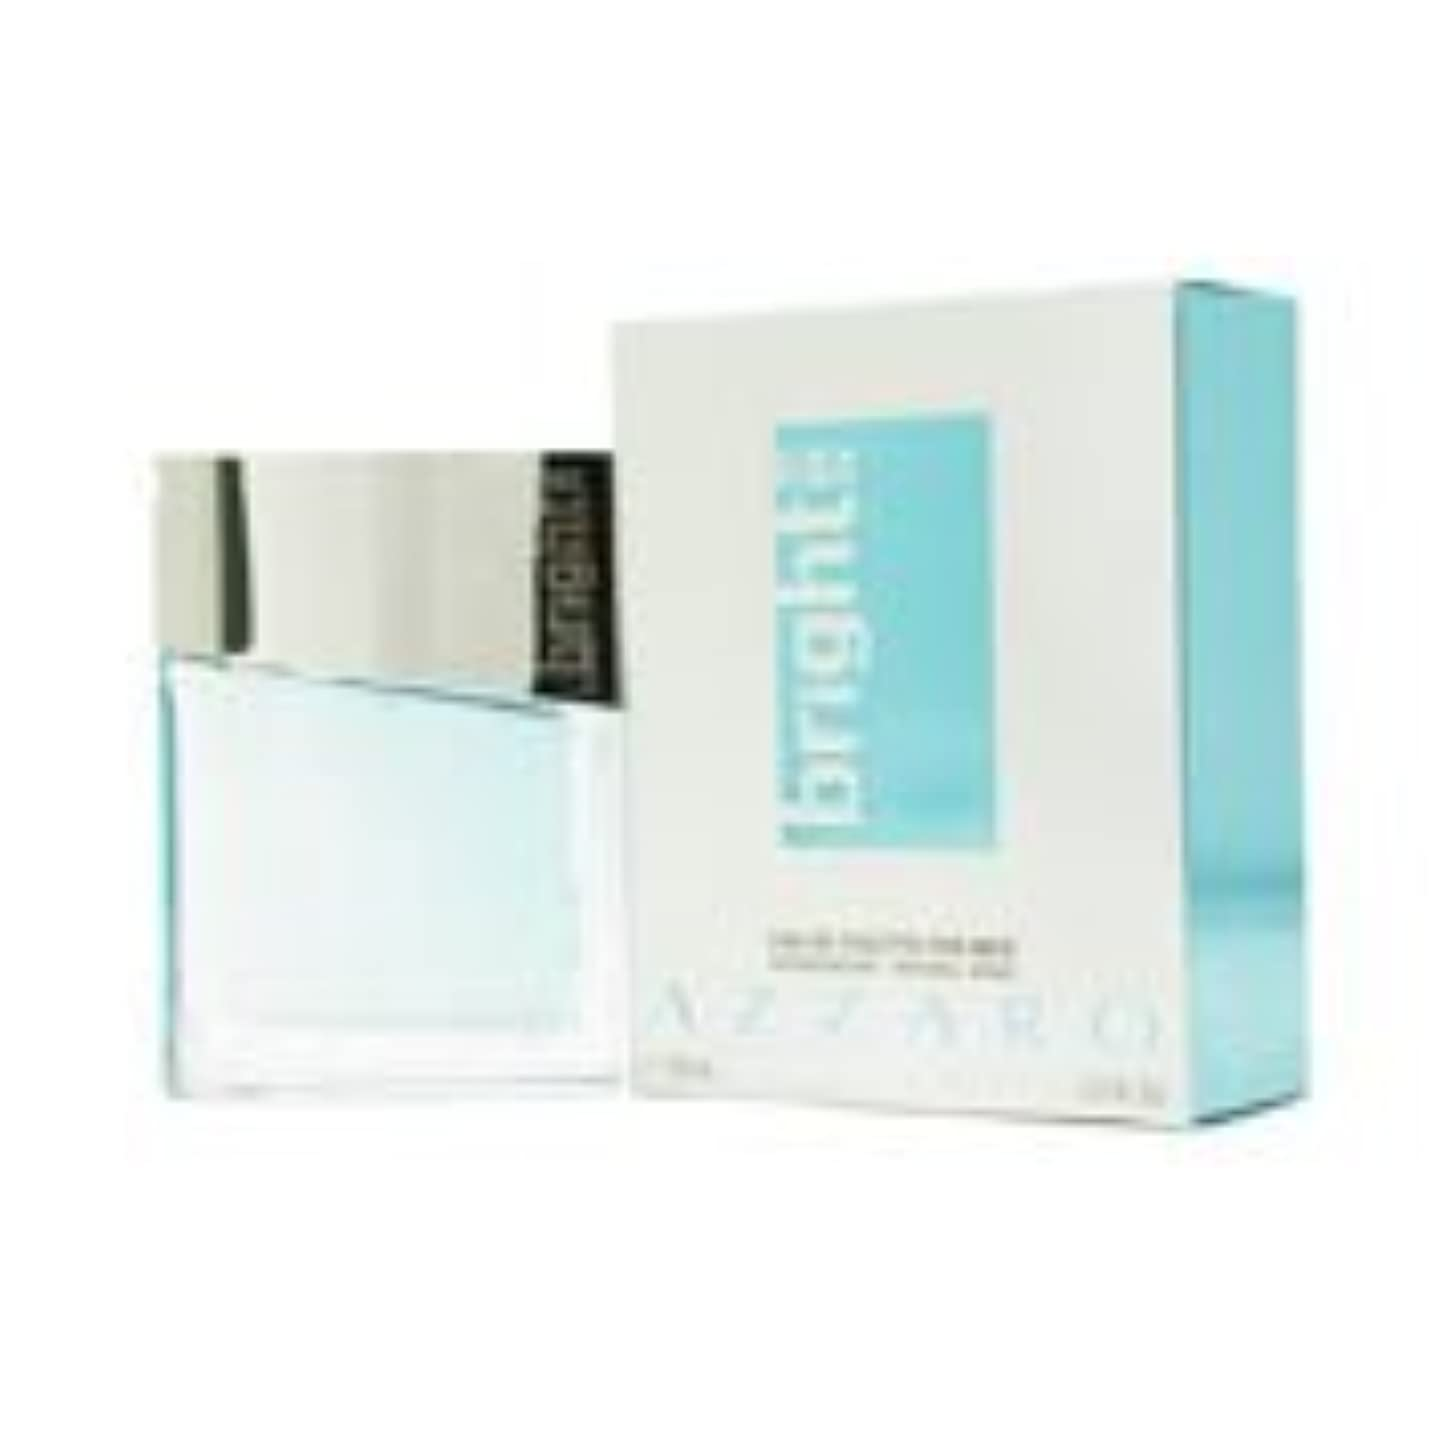 発言するアーク癒すAzzaro Bright Visit (アザロブライトビジット) 1.0 oz (30ml) EDT Spray by Loris Azzaro for Men